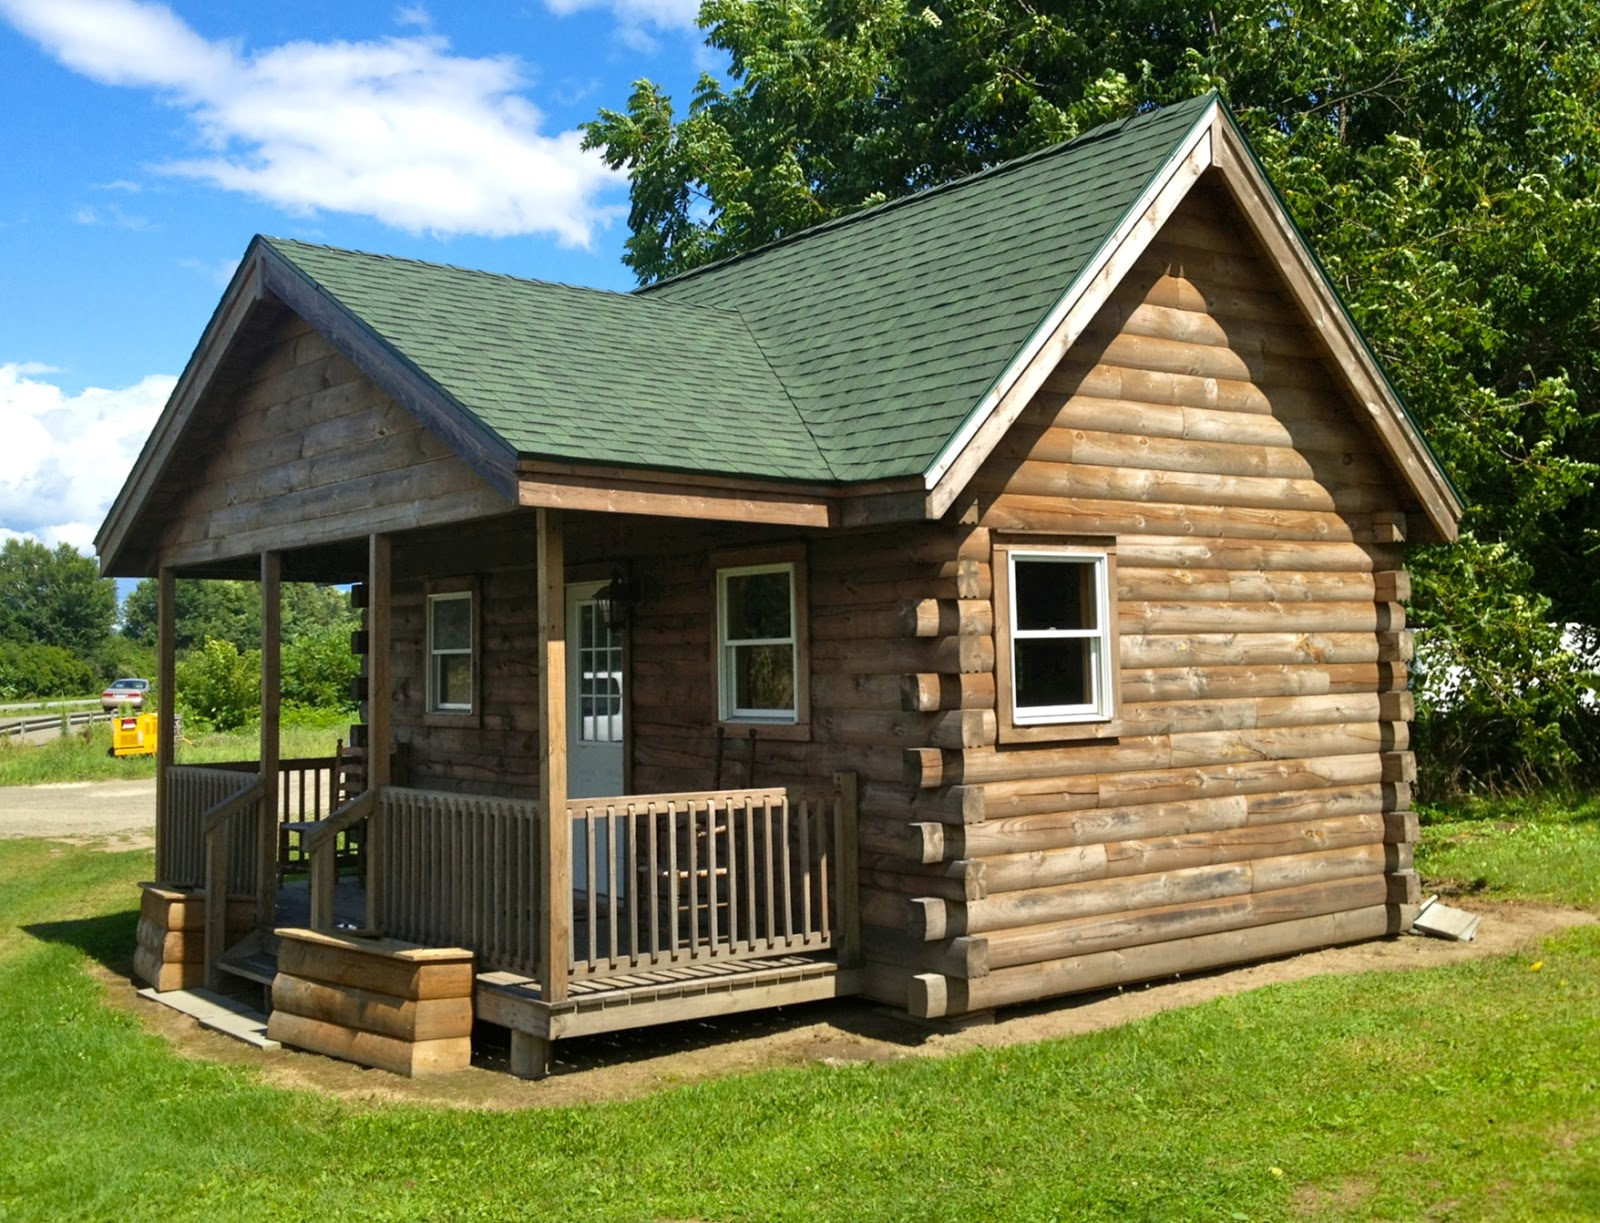 Small Scale Homes: Tiny Home near Binghamton, NY